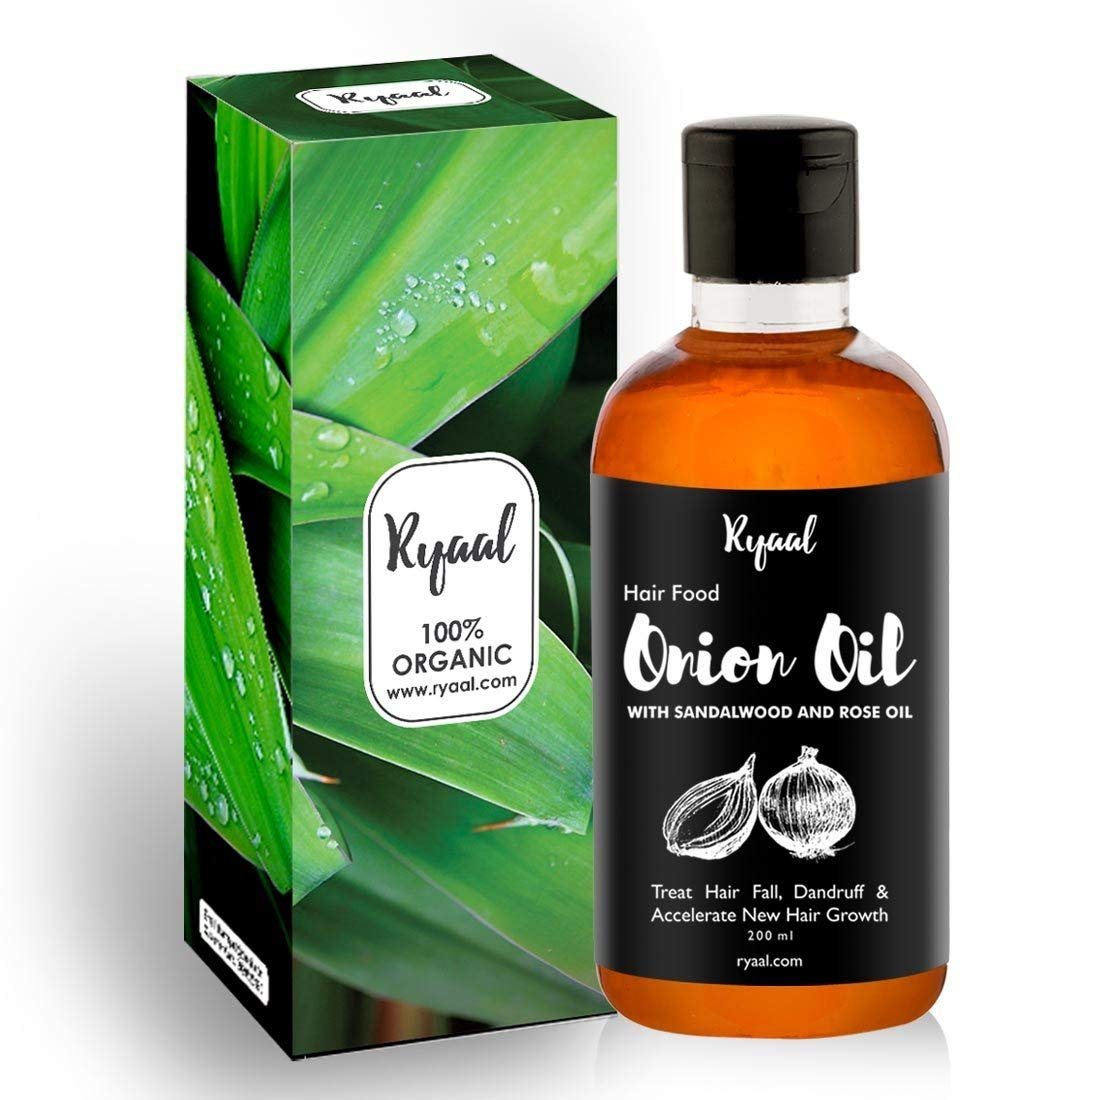 Ryaal Hair Food Onion Hair Oil Image